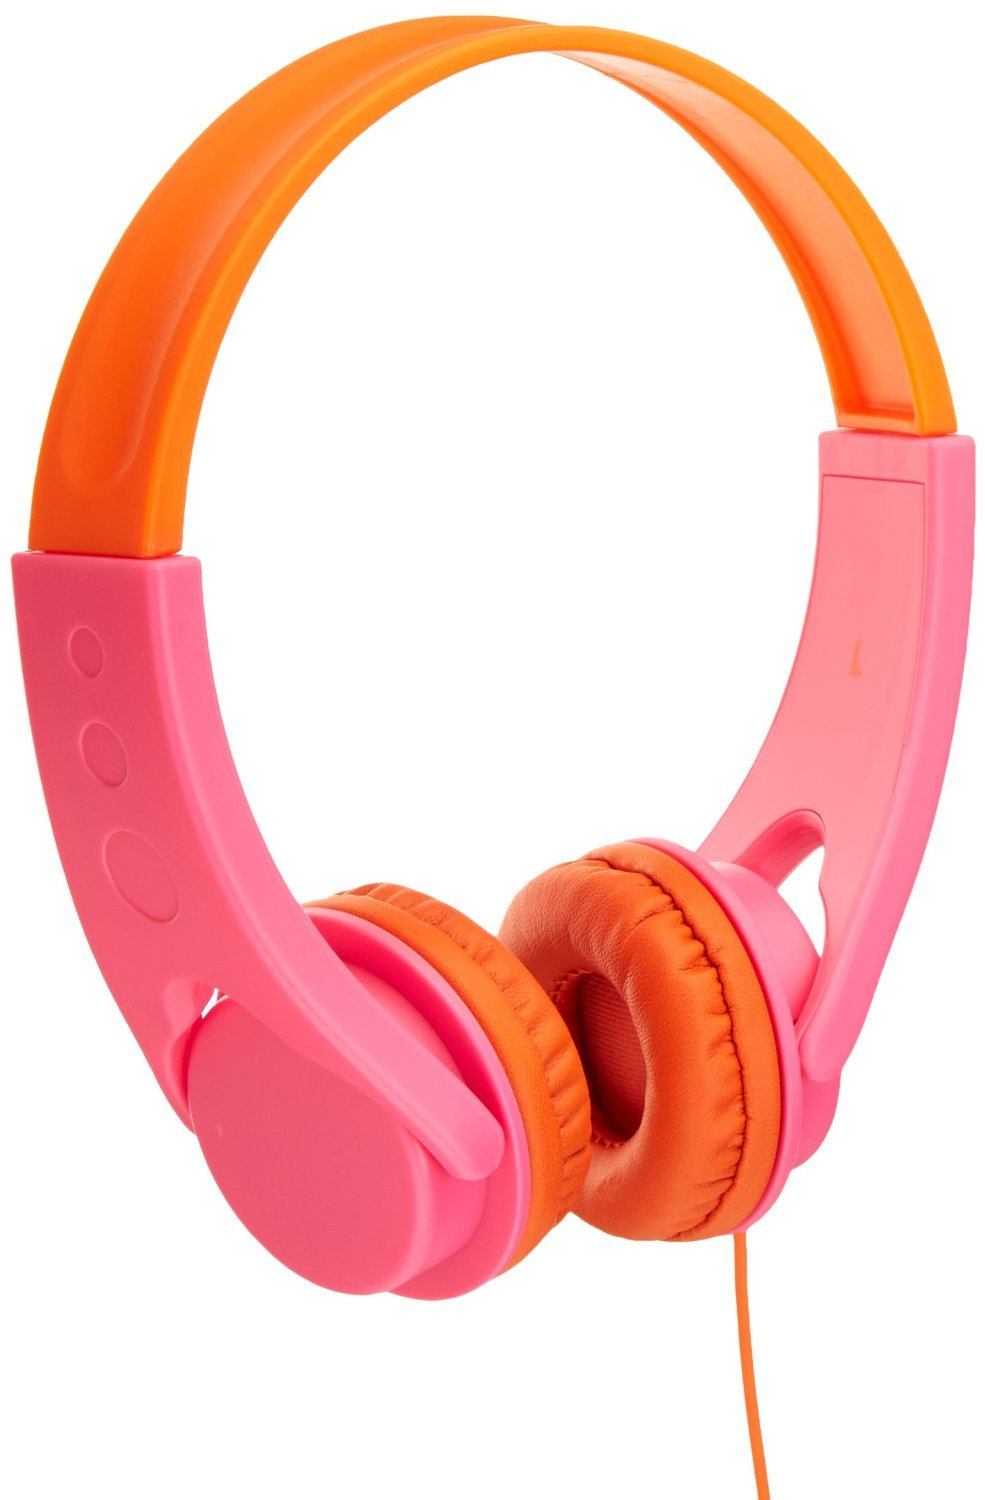 AmazonBasics On-Ear Headphones for Kids - 61nrZP2yMlL - AmazonBasics On-Ear Headphones for Kids